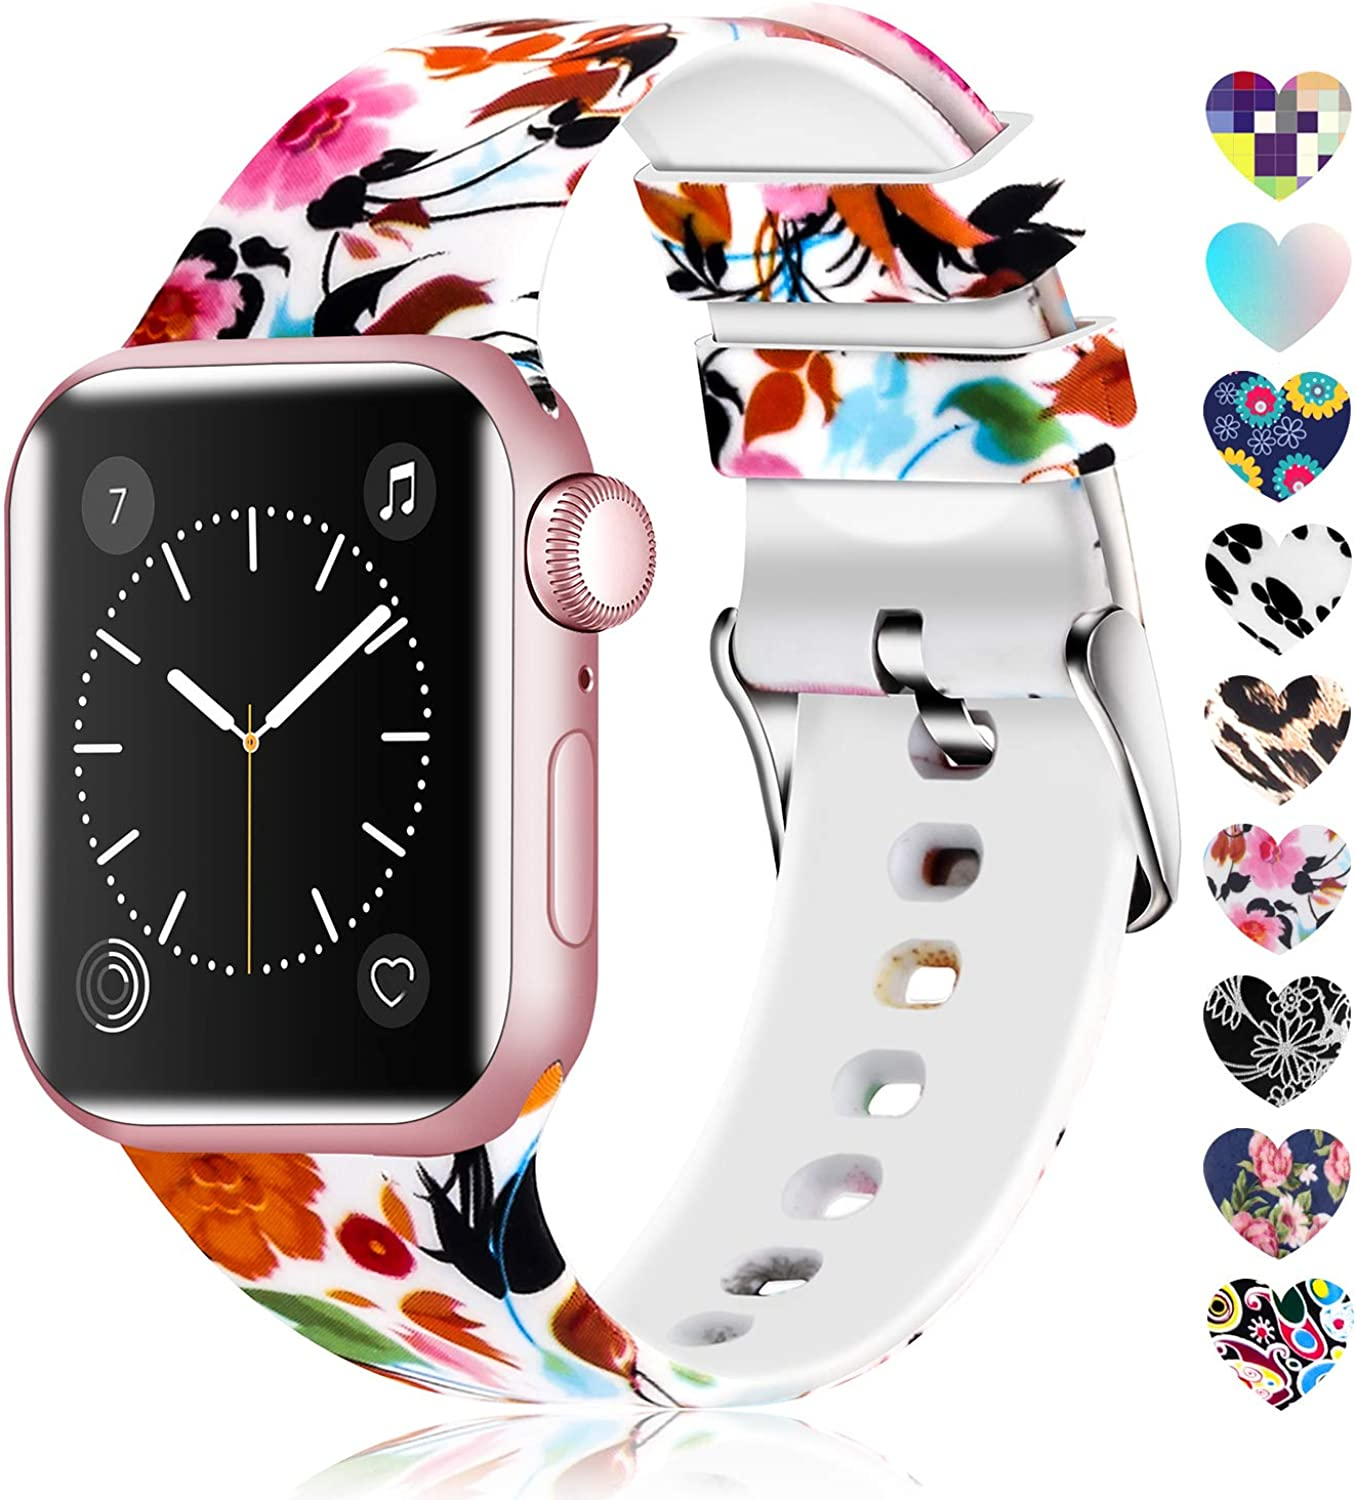 Lwsengme Compatible with Apple Watch Band 38mm 40mm 42mm 44mm, Soft Silicone Replacment Sport Bands Compatible with iWatch Series 6,Series 5,Series 4,Series 3,Series 2,Series 1,SE